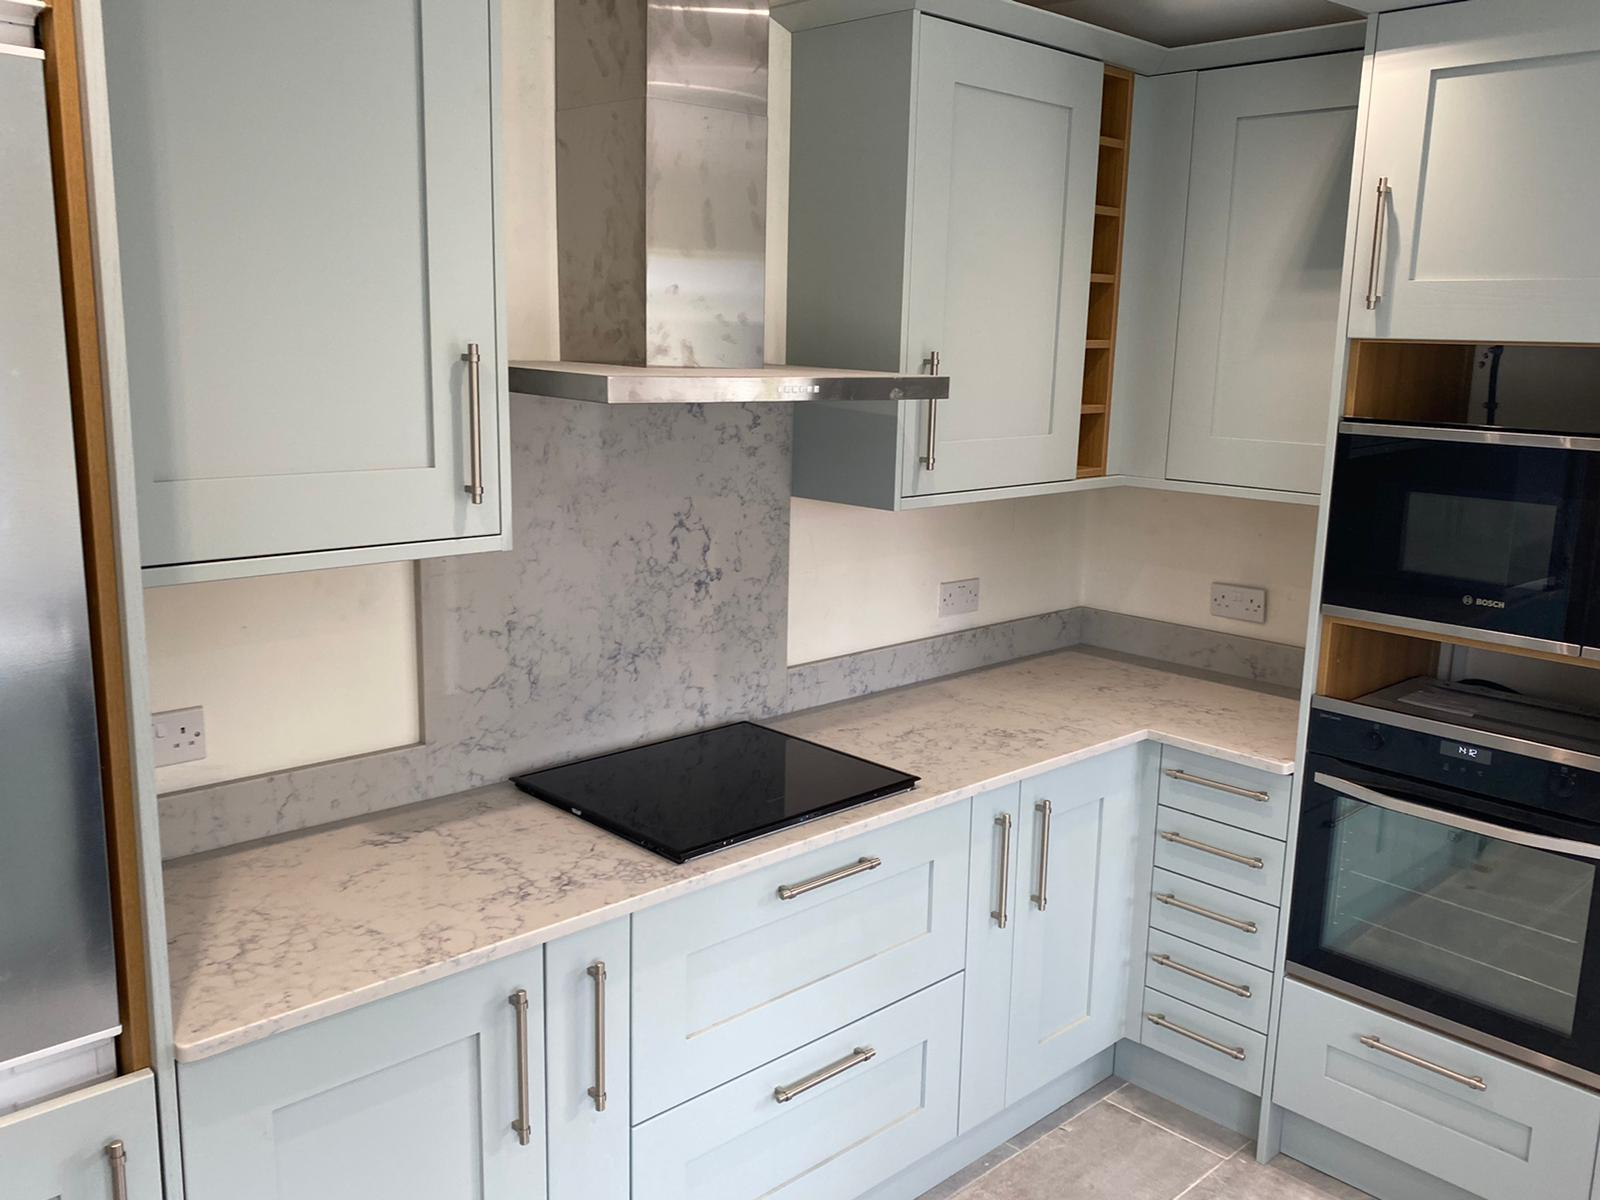 Benefits of Having a Quartz Kitchen Worktop